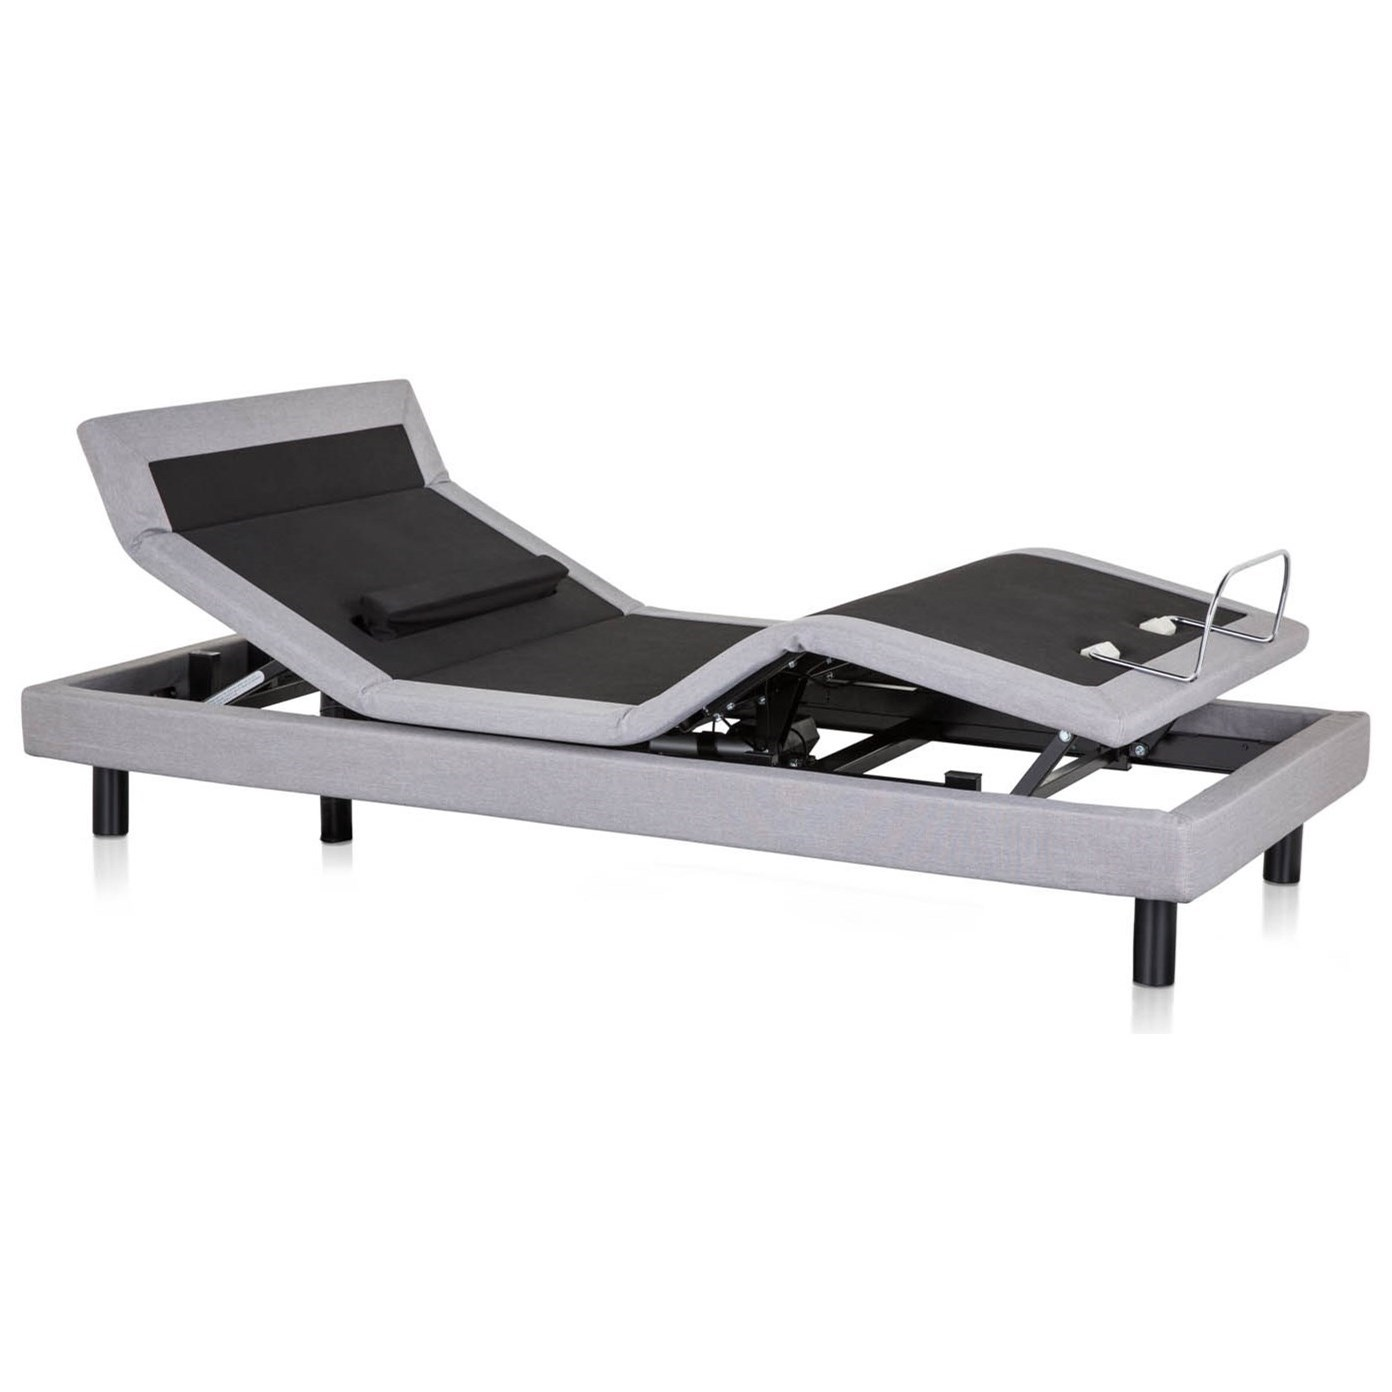 Malouf Structures S700 Adjustable Bed Base Twin Extra Long ...